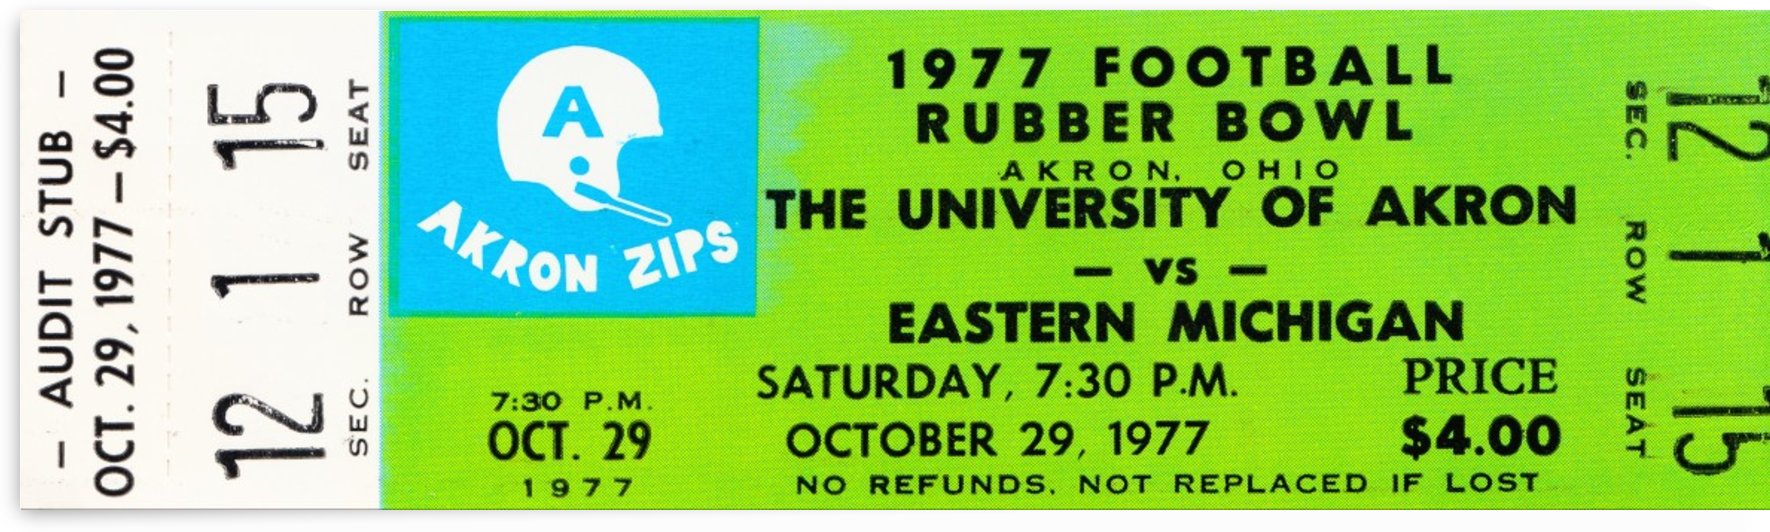 1977 rubber bowl akron zips eastern michigan ticket stub art reproduction by Row One Brand